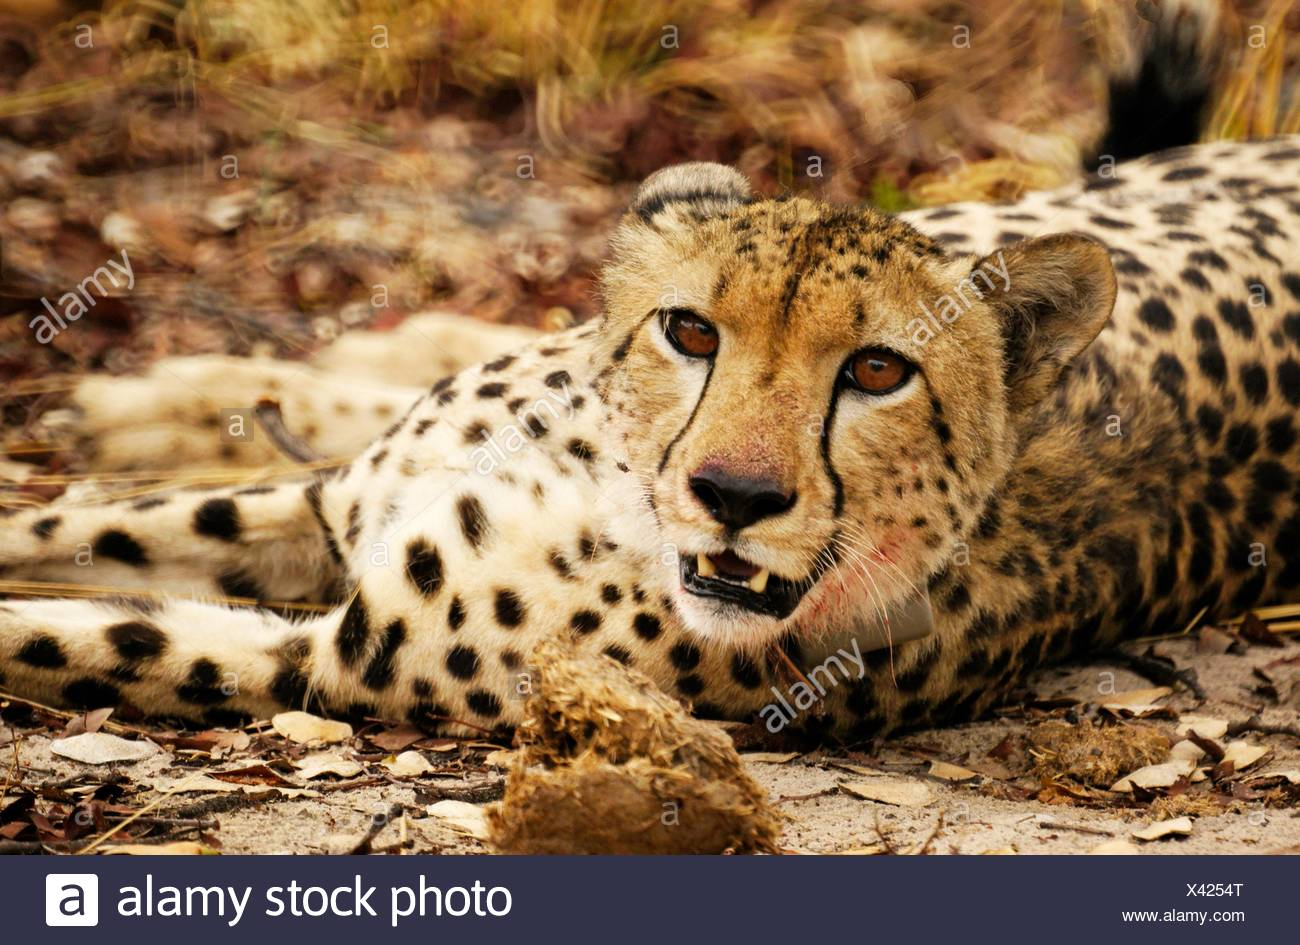 Cheetah Lea, with collar, at the Moremi Game reserve, Botswana - Stock Image